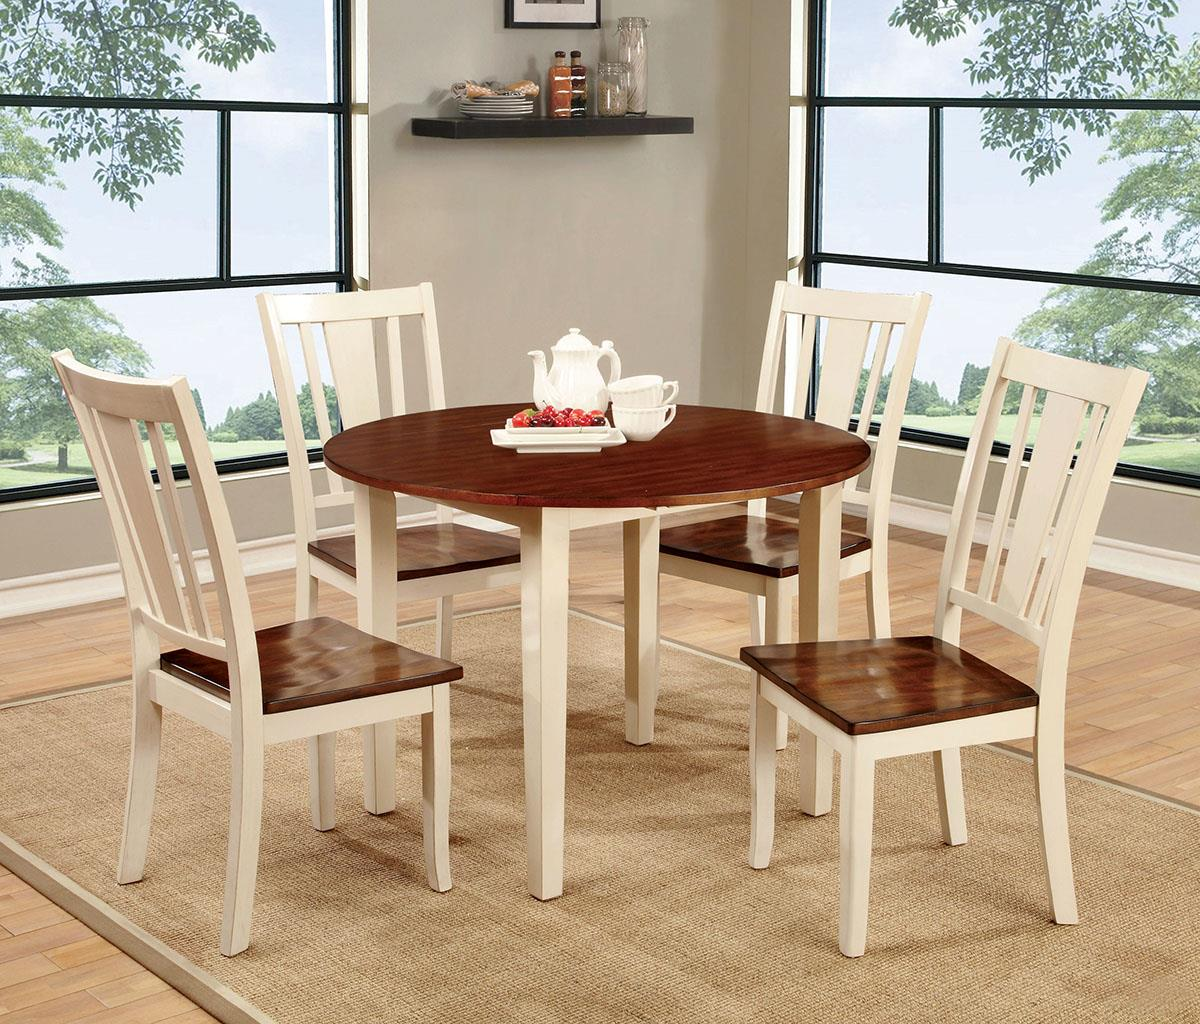 Dover II White Cherry Round 5PC Dining Set - KTL Furniture